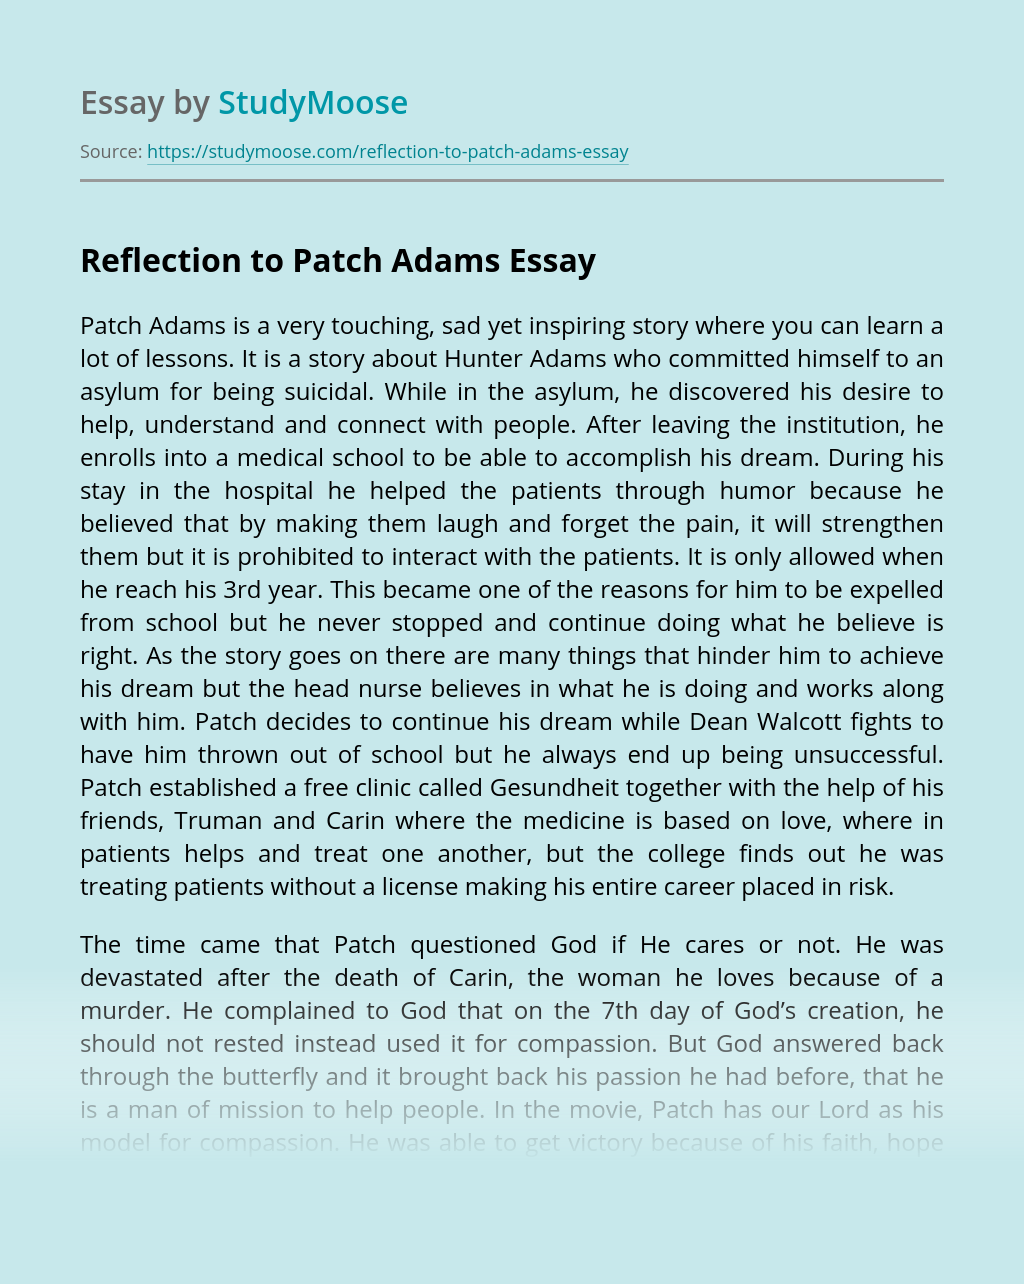 Reflection to Patch Adams